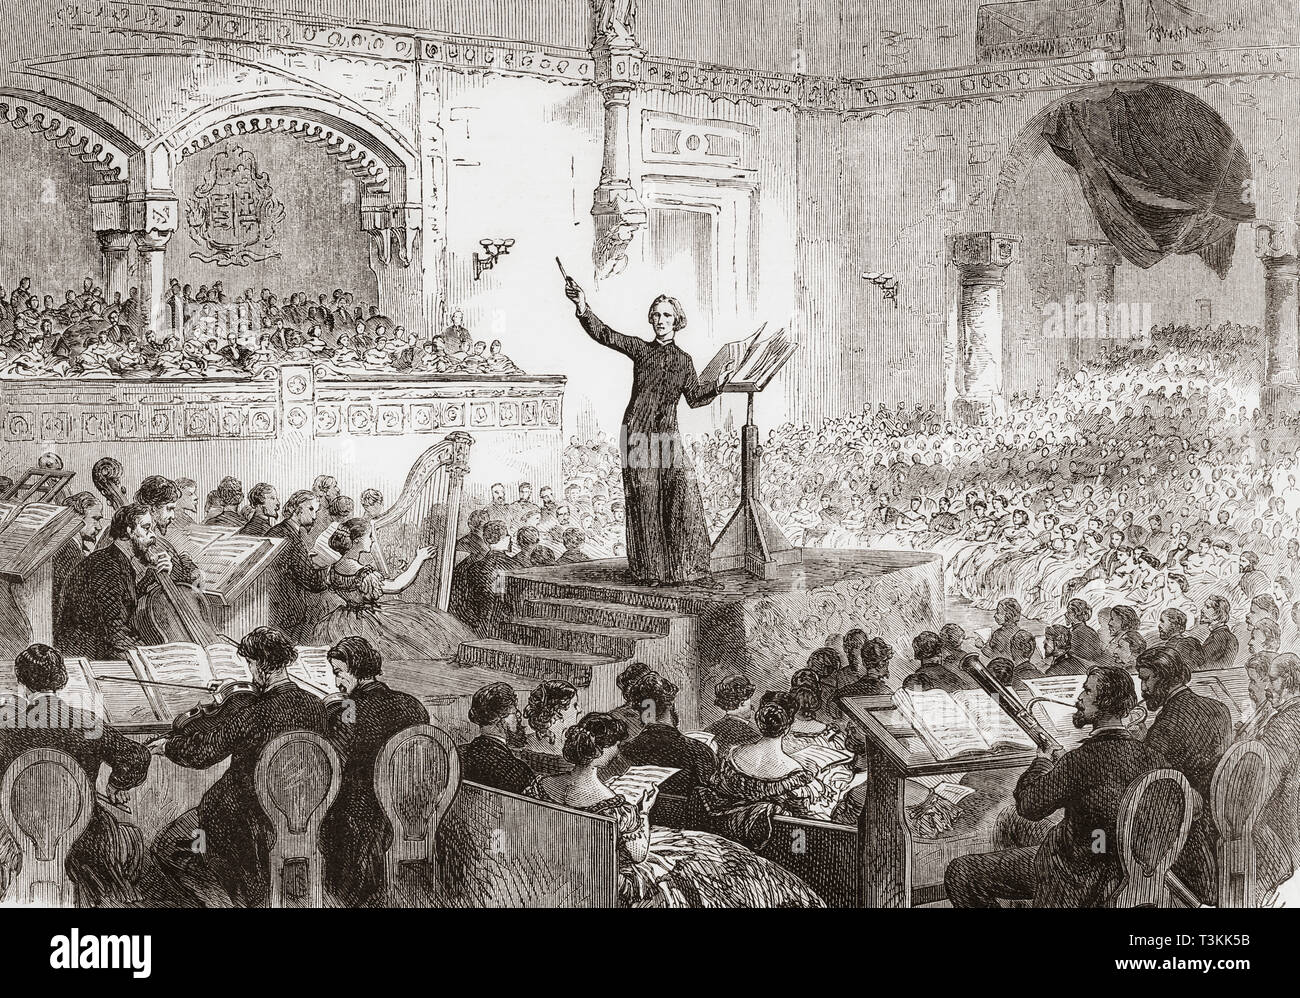 Franz Liszt conducting the performance of his new oratorio, The Legend of St. Elizabeth, in Pest, Hungary in 1865. Franz Liszt, 1811 – 1886.  Hungarian composer, virtuoso pianist, conductor, music teacher, arranger, organist, writer, philanthropist,  Hungarian nationalist and a Franciscan tertiary.  From The Illustrated London News, published 1865. - Stock Image